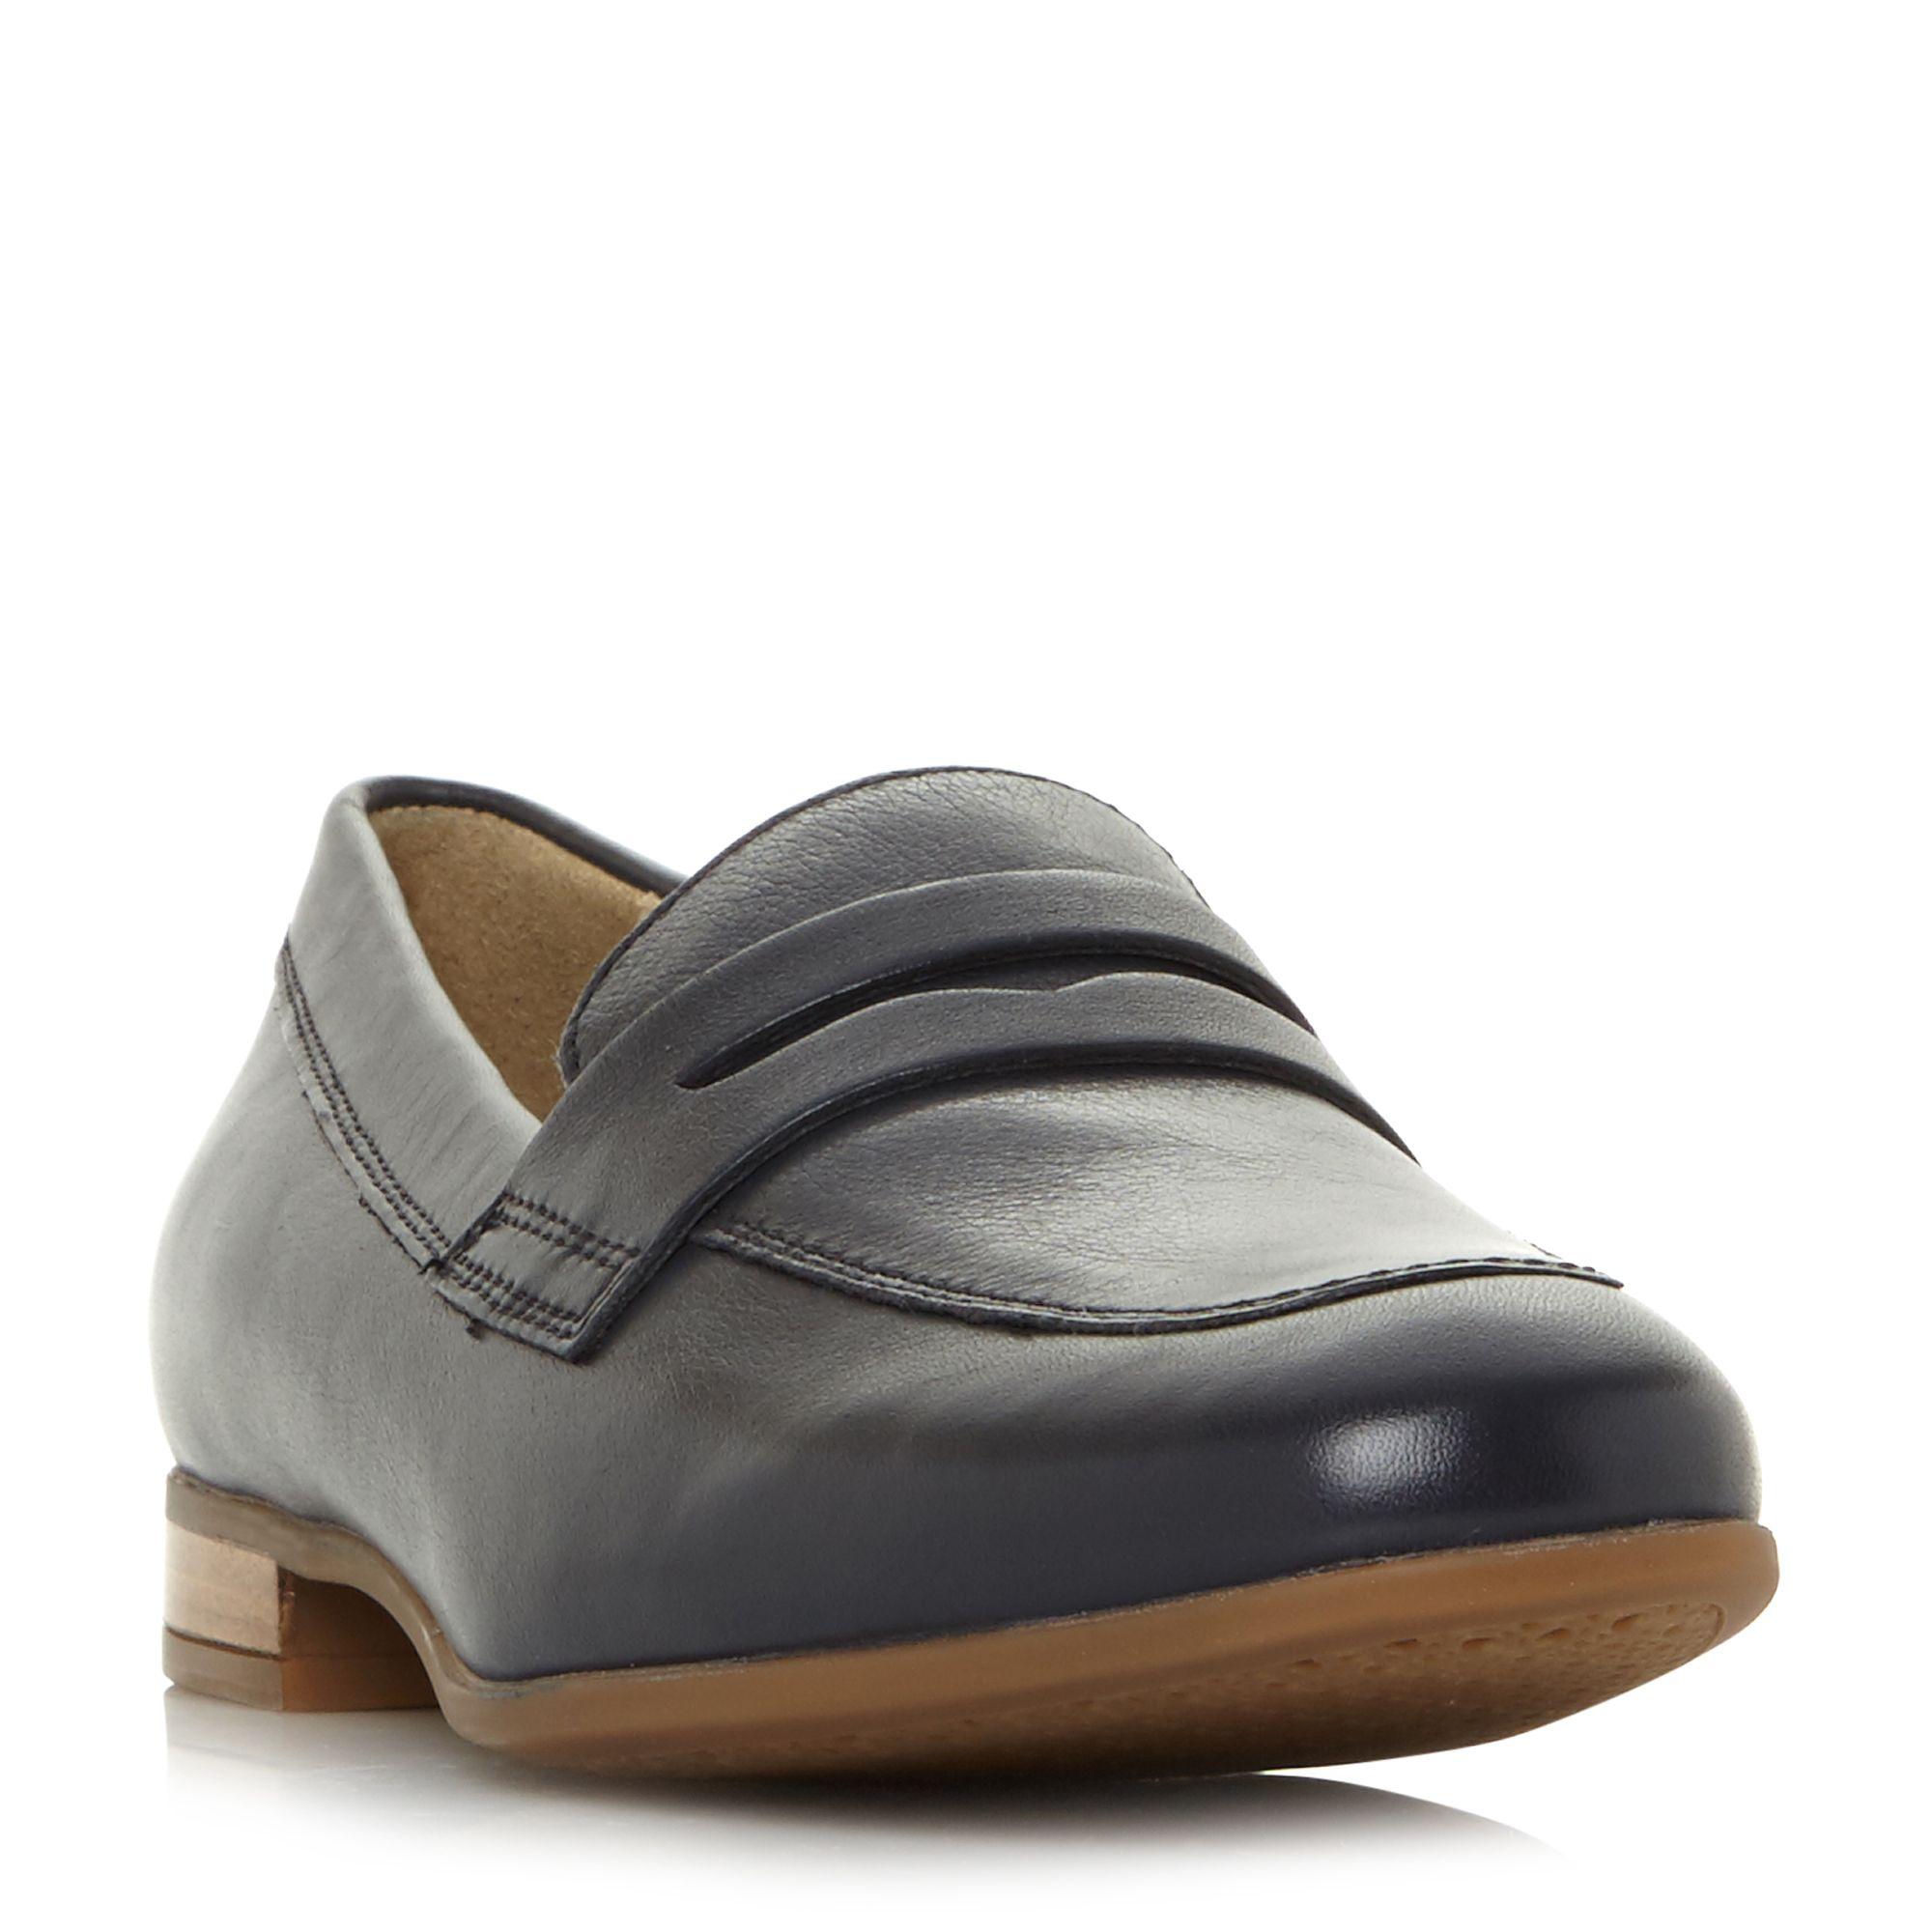 Geox D Marlyna B Penny Loafers, Blue